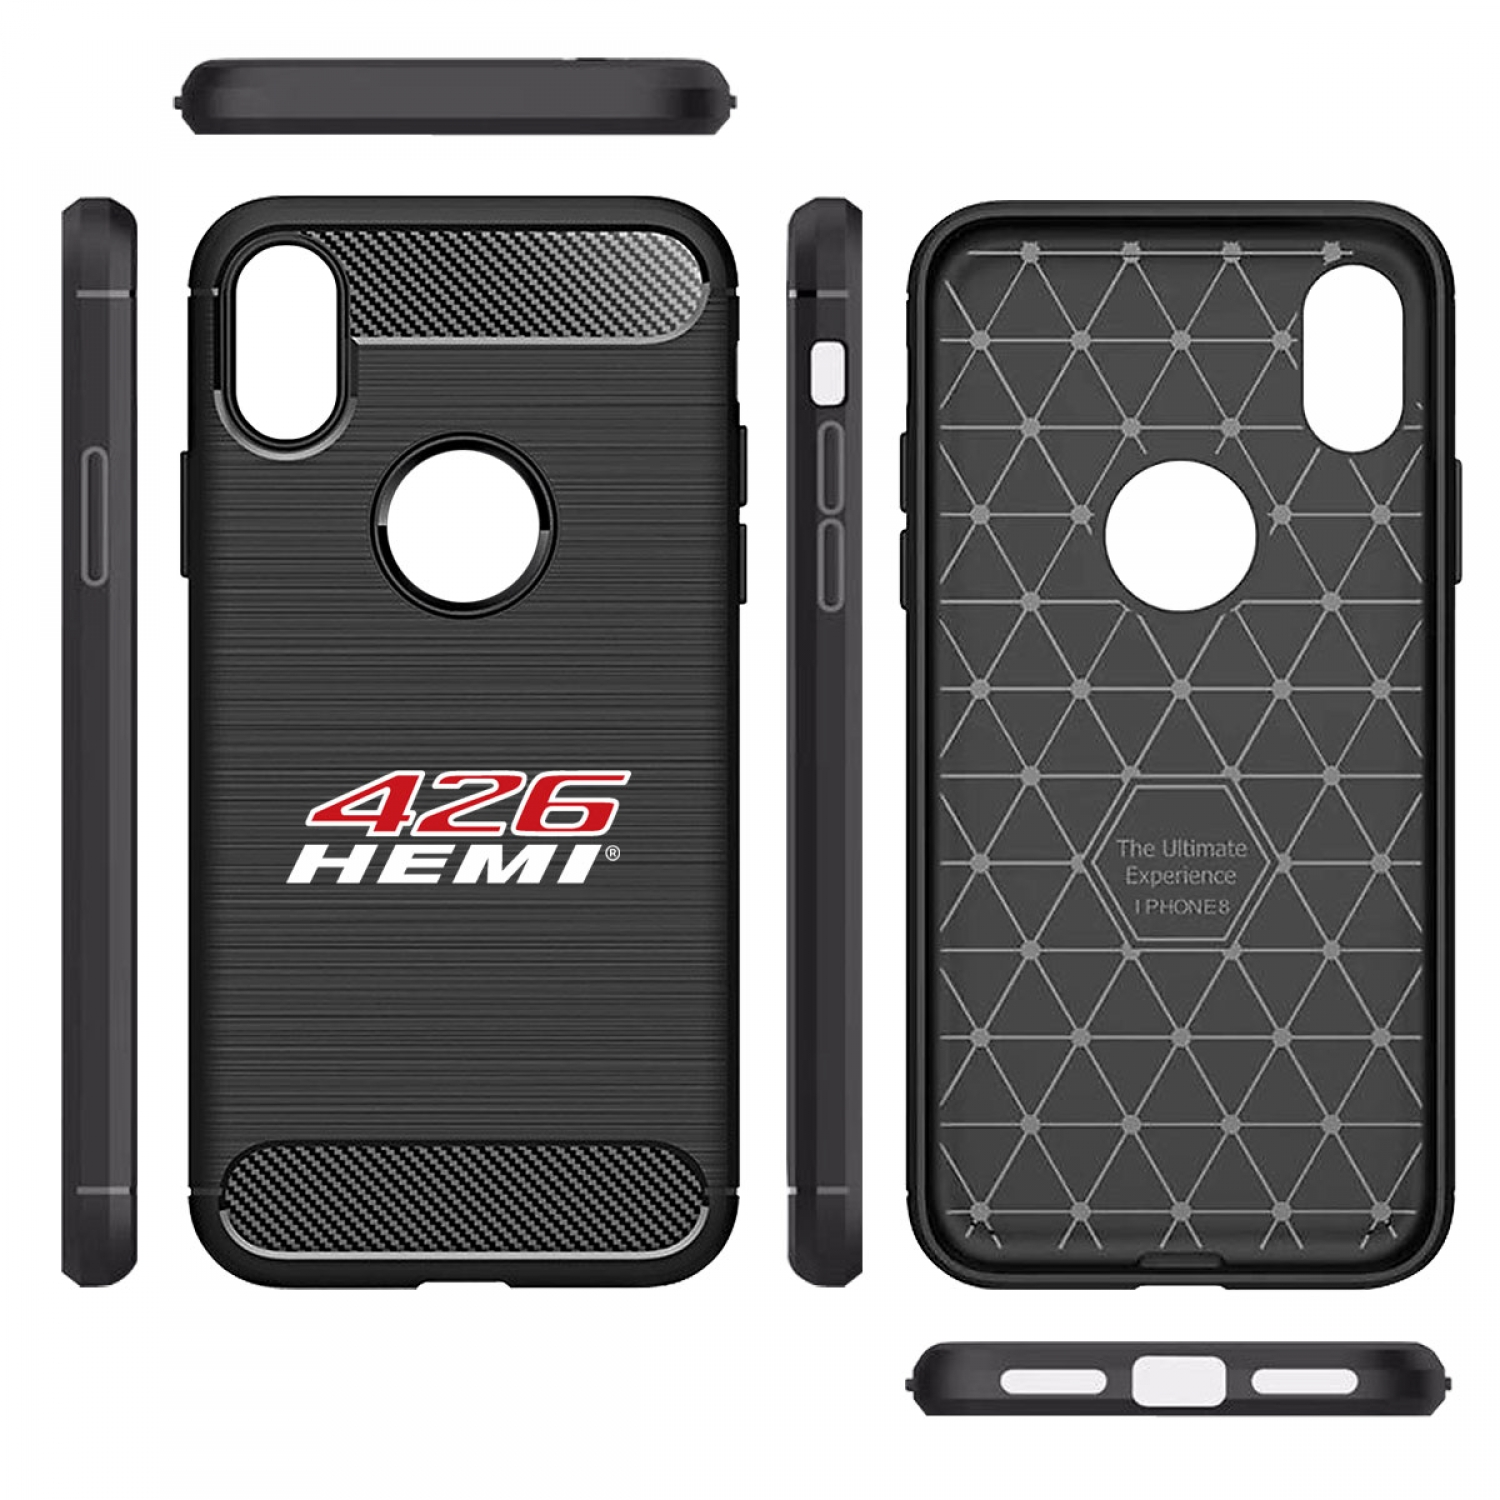 HEMI 426 HP iPhone X TPU Shockproof Black Carbon Fiber Textures Stripes Cell Phone Case